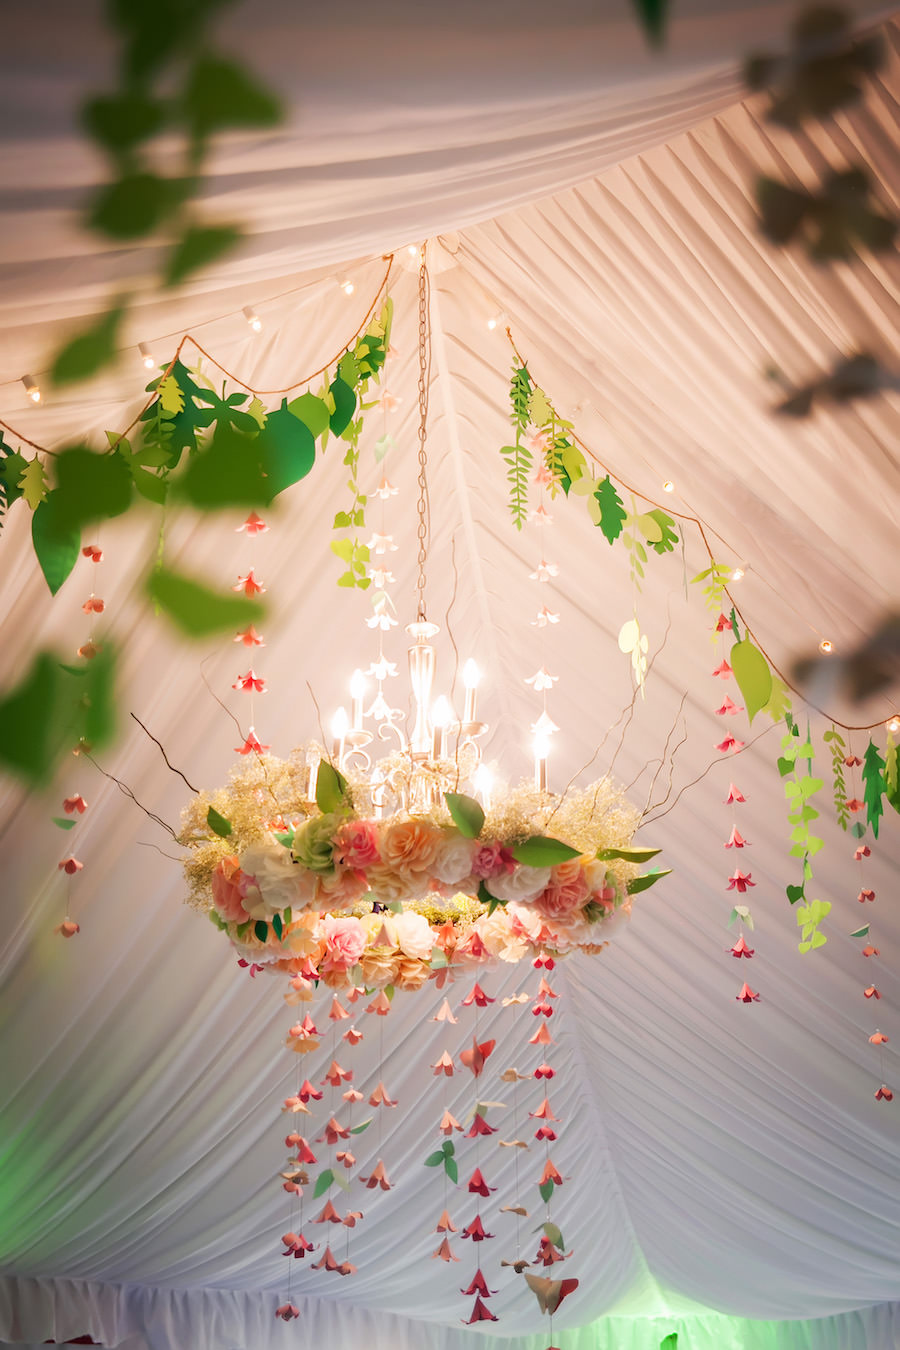 Floral Chandelier, Whimsical, Hanging Wedding Decor at Garden Wedding Reception | Mid-Summer's Night Dream Wedding Inspiration | Tampa Wedding Venue DoubleTree Suites by Hilton